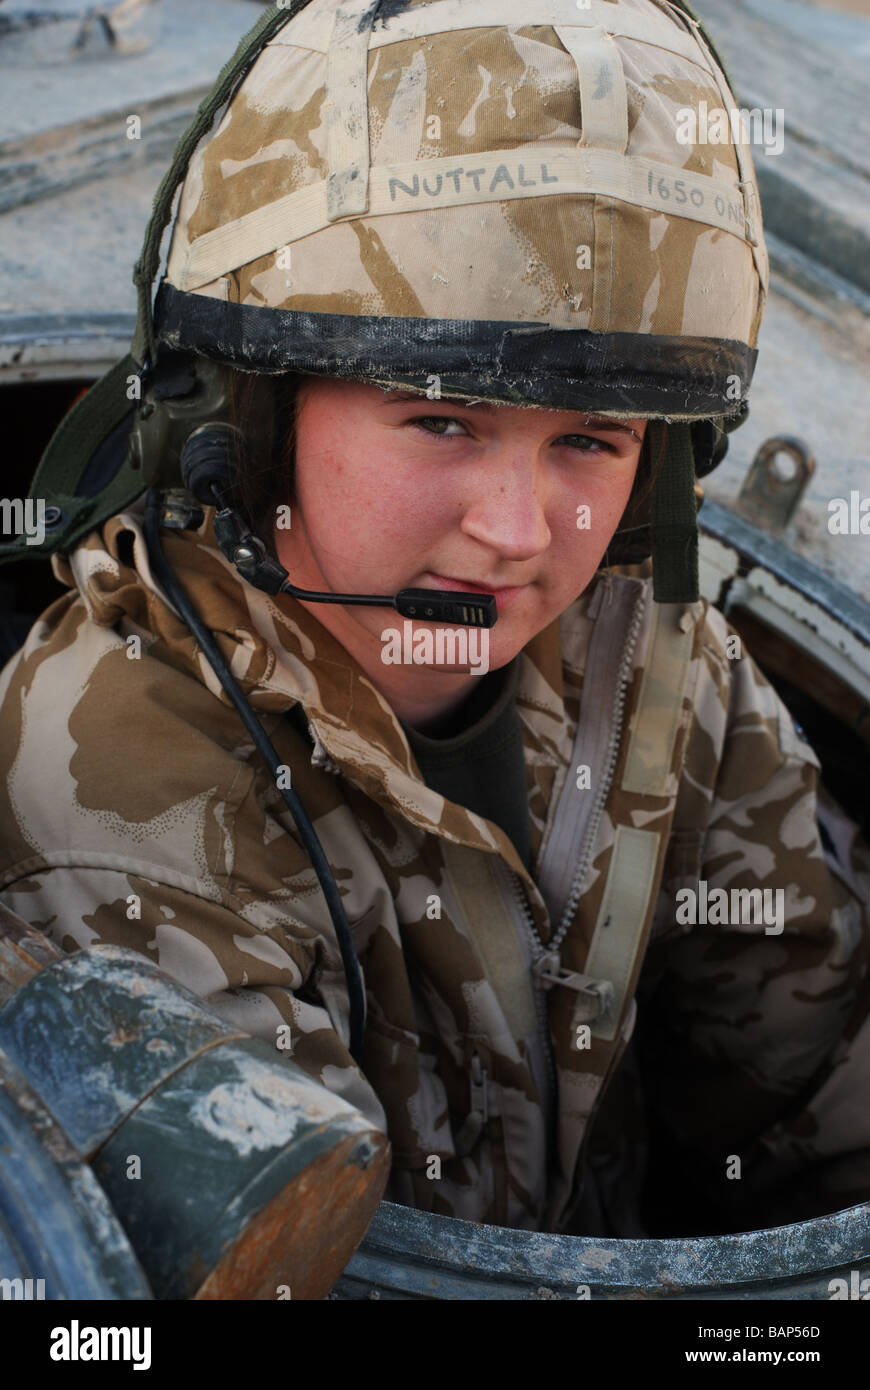 Craftsman CFN Sue Nuttall 21 recovery mechanic CRARRV Challenger Armoured Repair and recovery vehicle Stock Photo